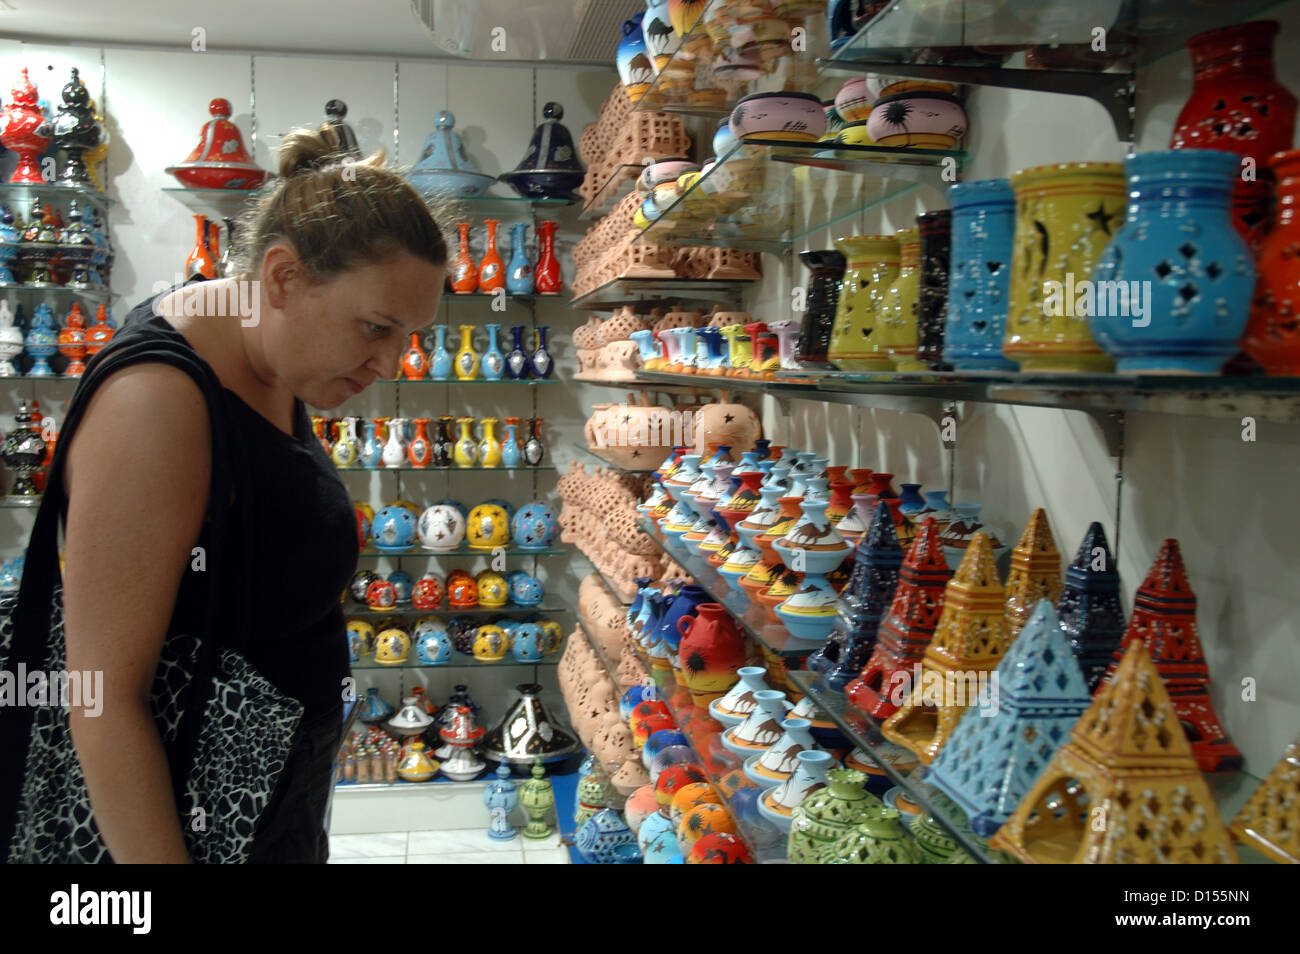 A holidaymaker shopping for gifts in Tunisia. - Stock Image